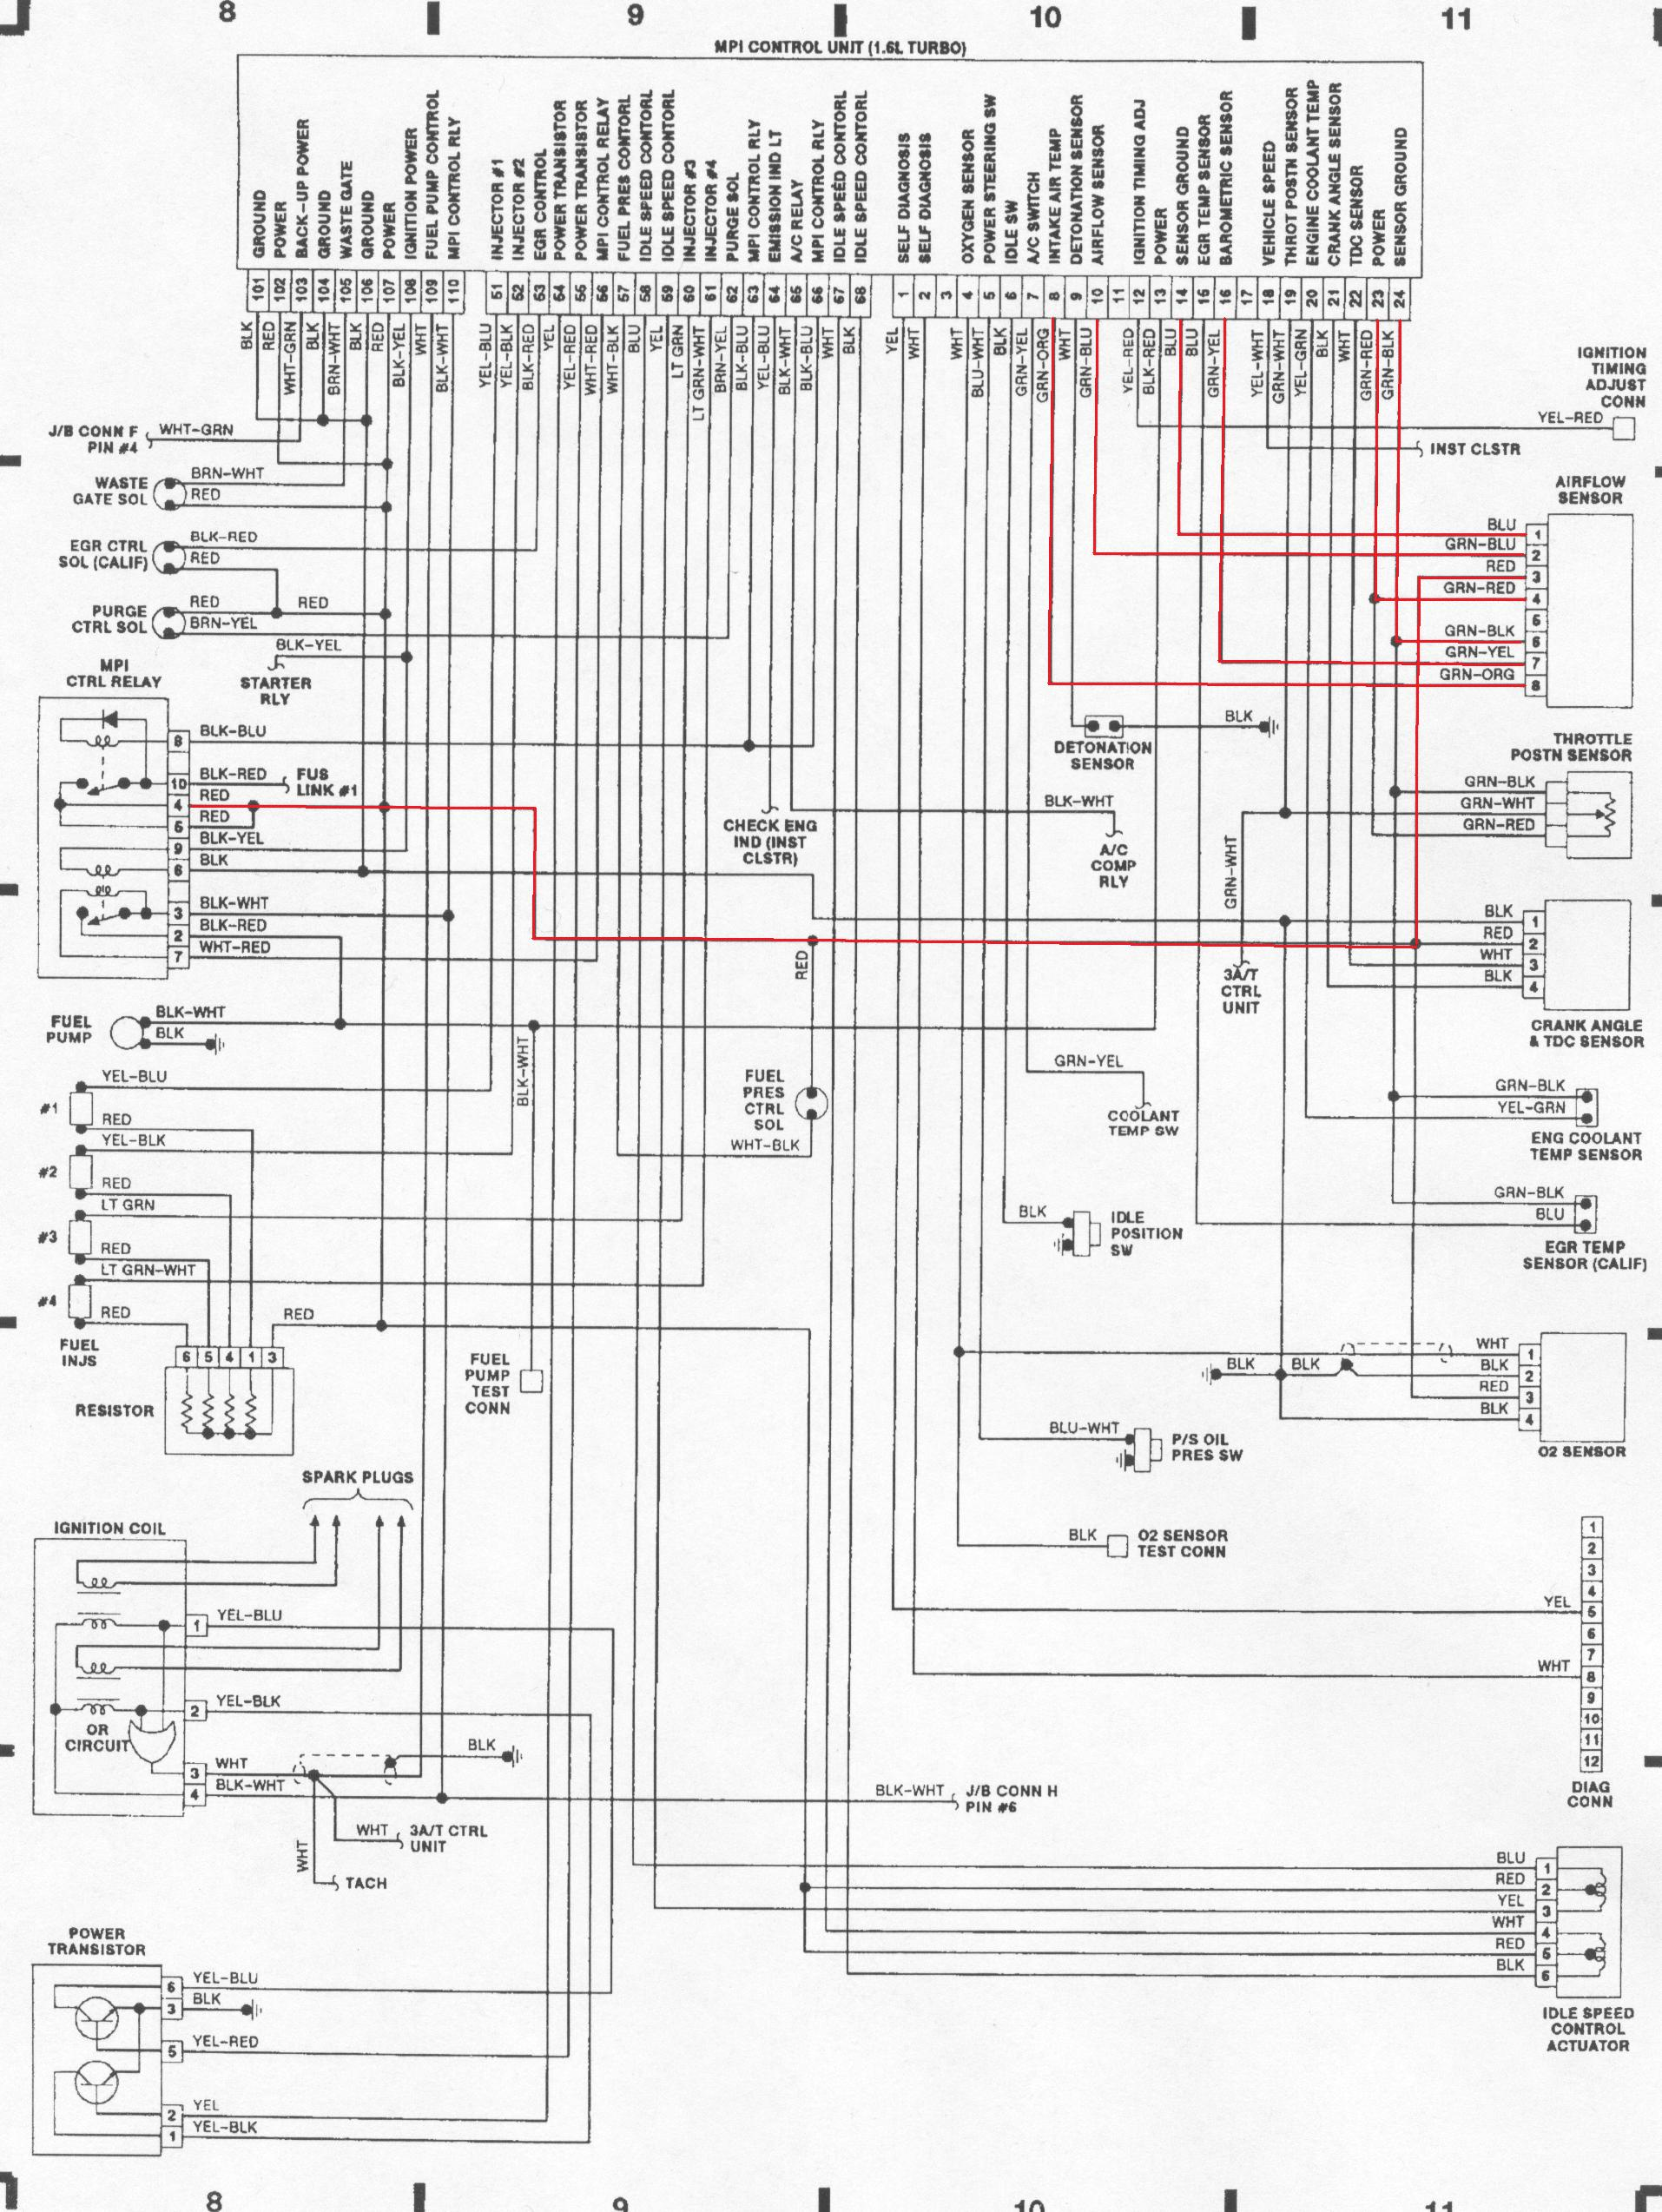 1997 mitsubishi mirage radio wiring diagram 99 f250 super duty 1985 gmc engine 2011 toyota tacoma